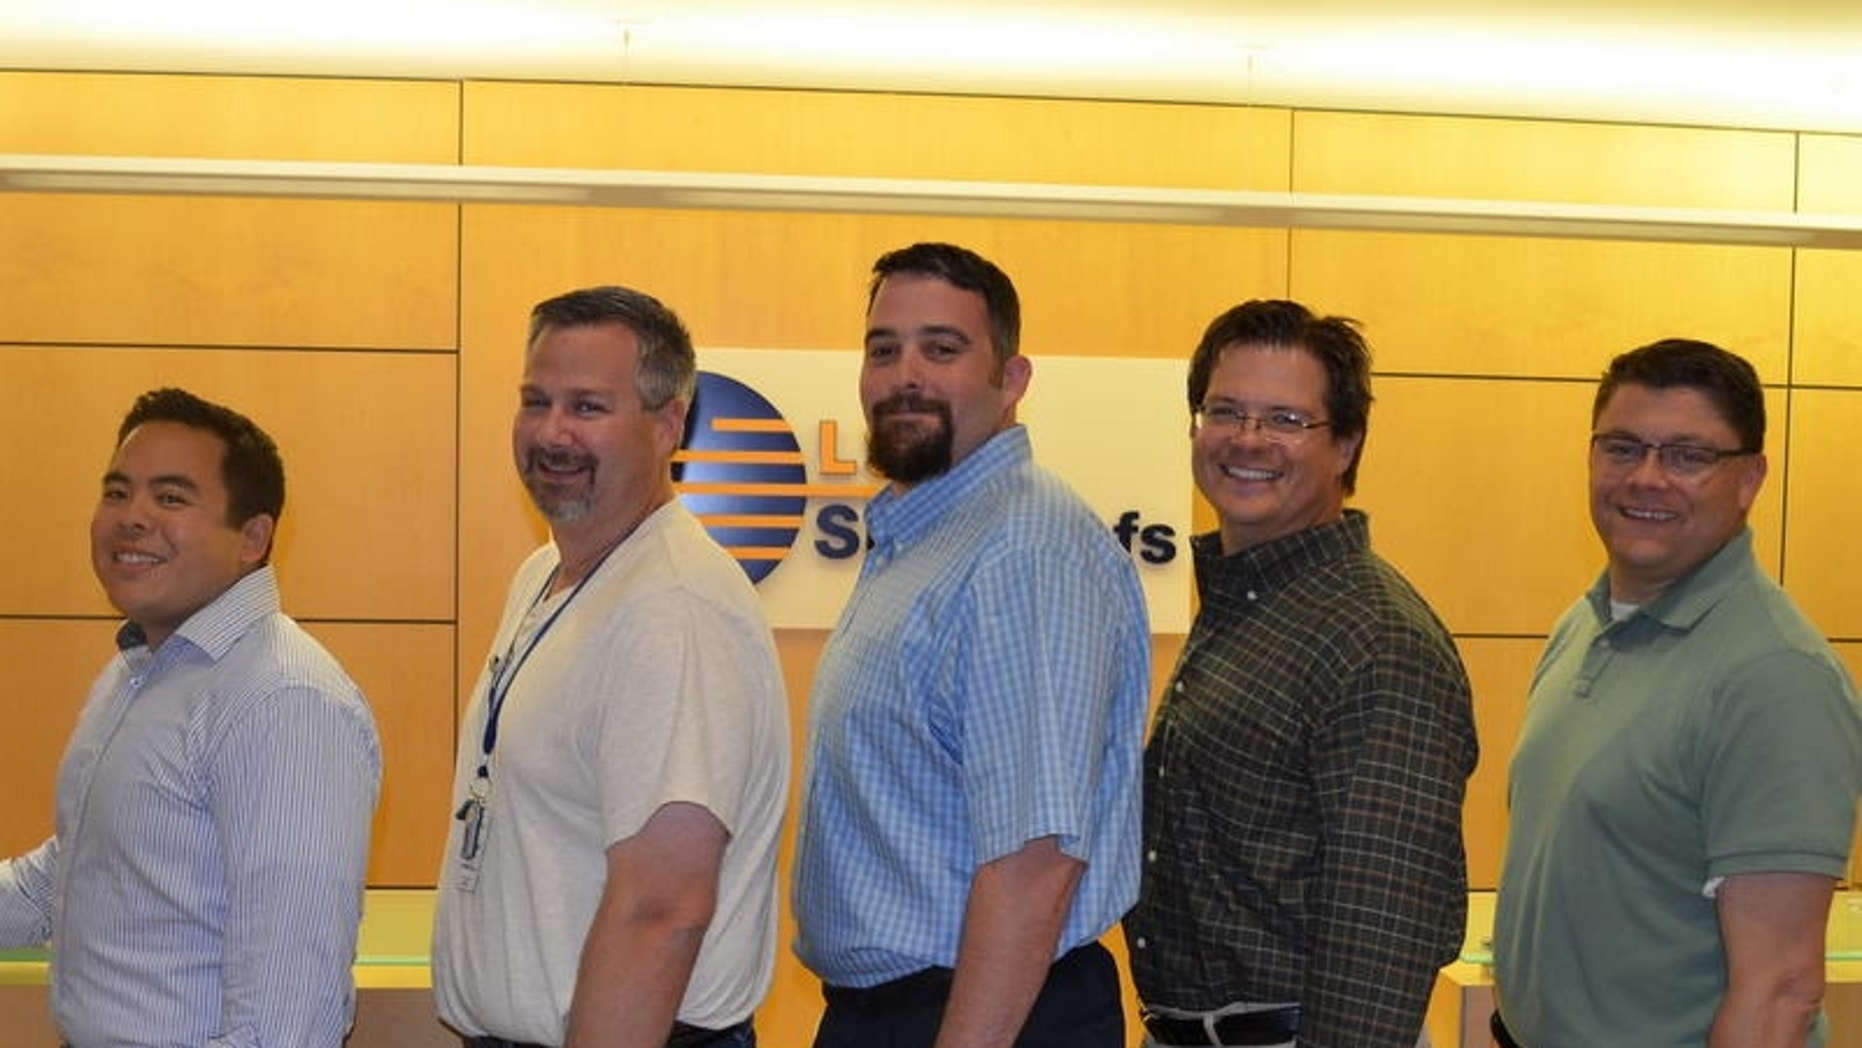 Weight-loss team members from LSG Sky Chefs: Andrew Trabosh, Neil Ylanan, Michael Sutter, Andrew Davis, Ben Levine. The team lost a total of 266 pounds or 19.10 percent.